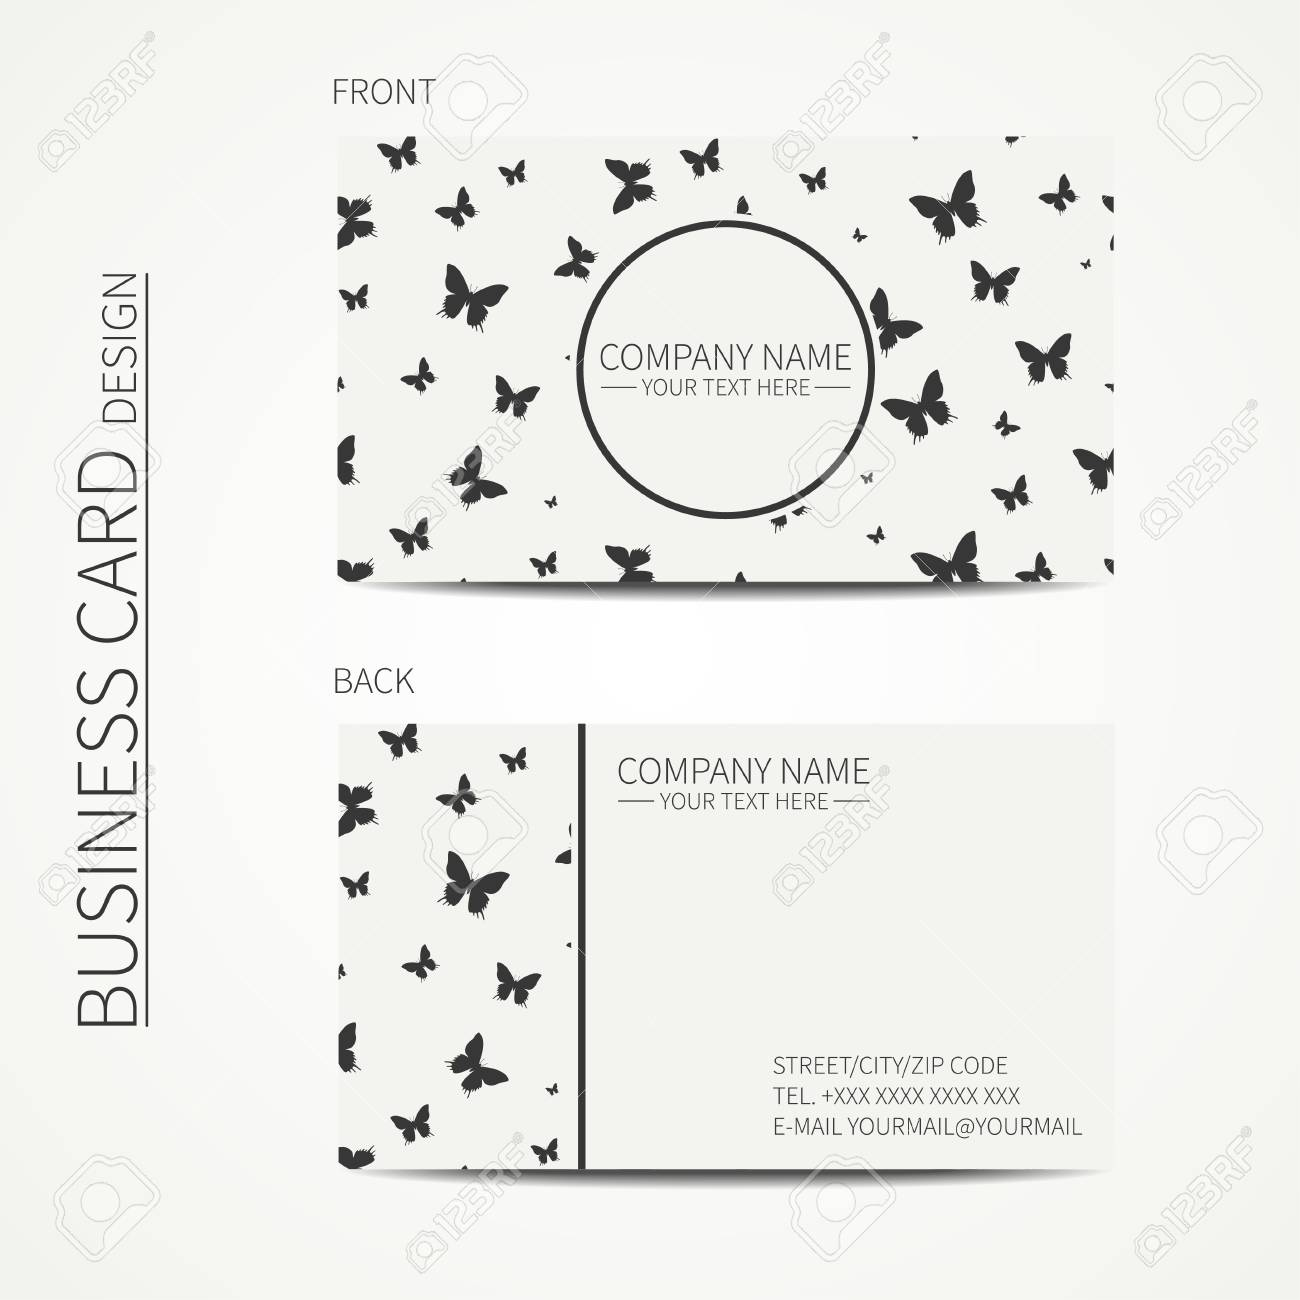 vector vector simple business card design template black and white business card for corporate business and personal use calling card - Simple Business Card Design